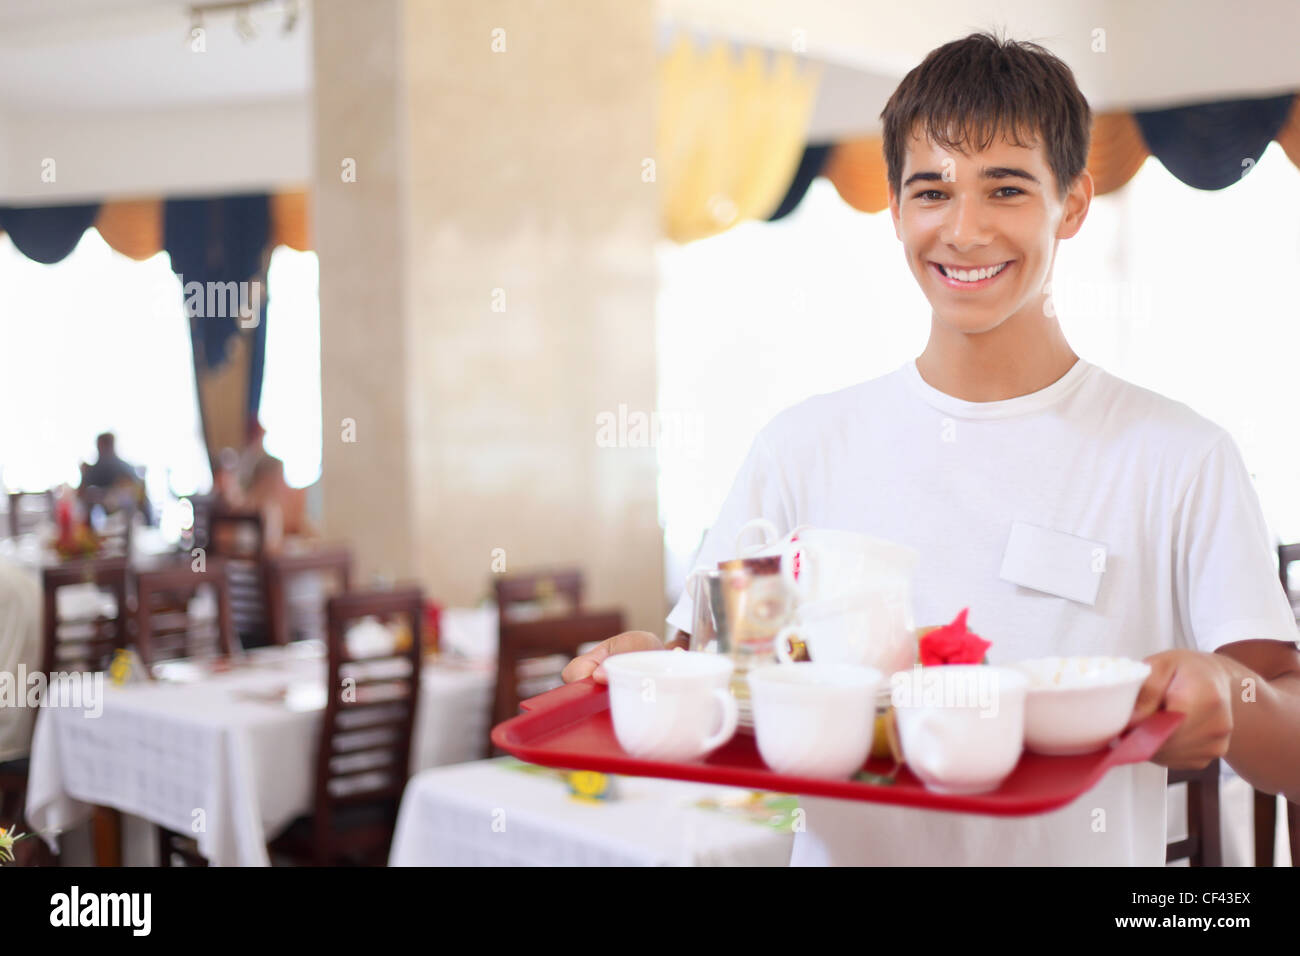 young smiling affable waiter keeps tray with dishes at restaurant, wide angle - Stock Image